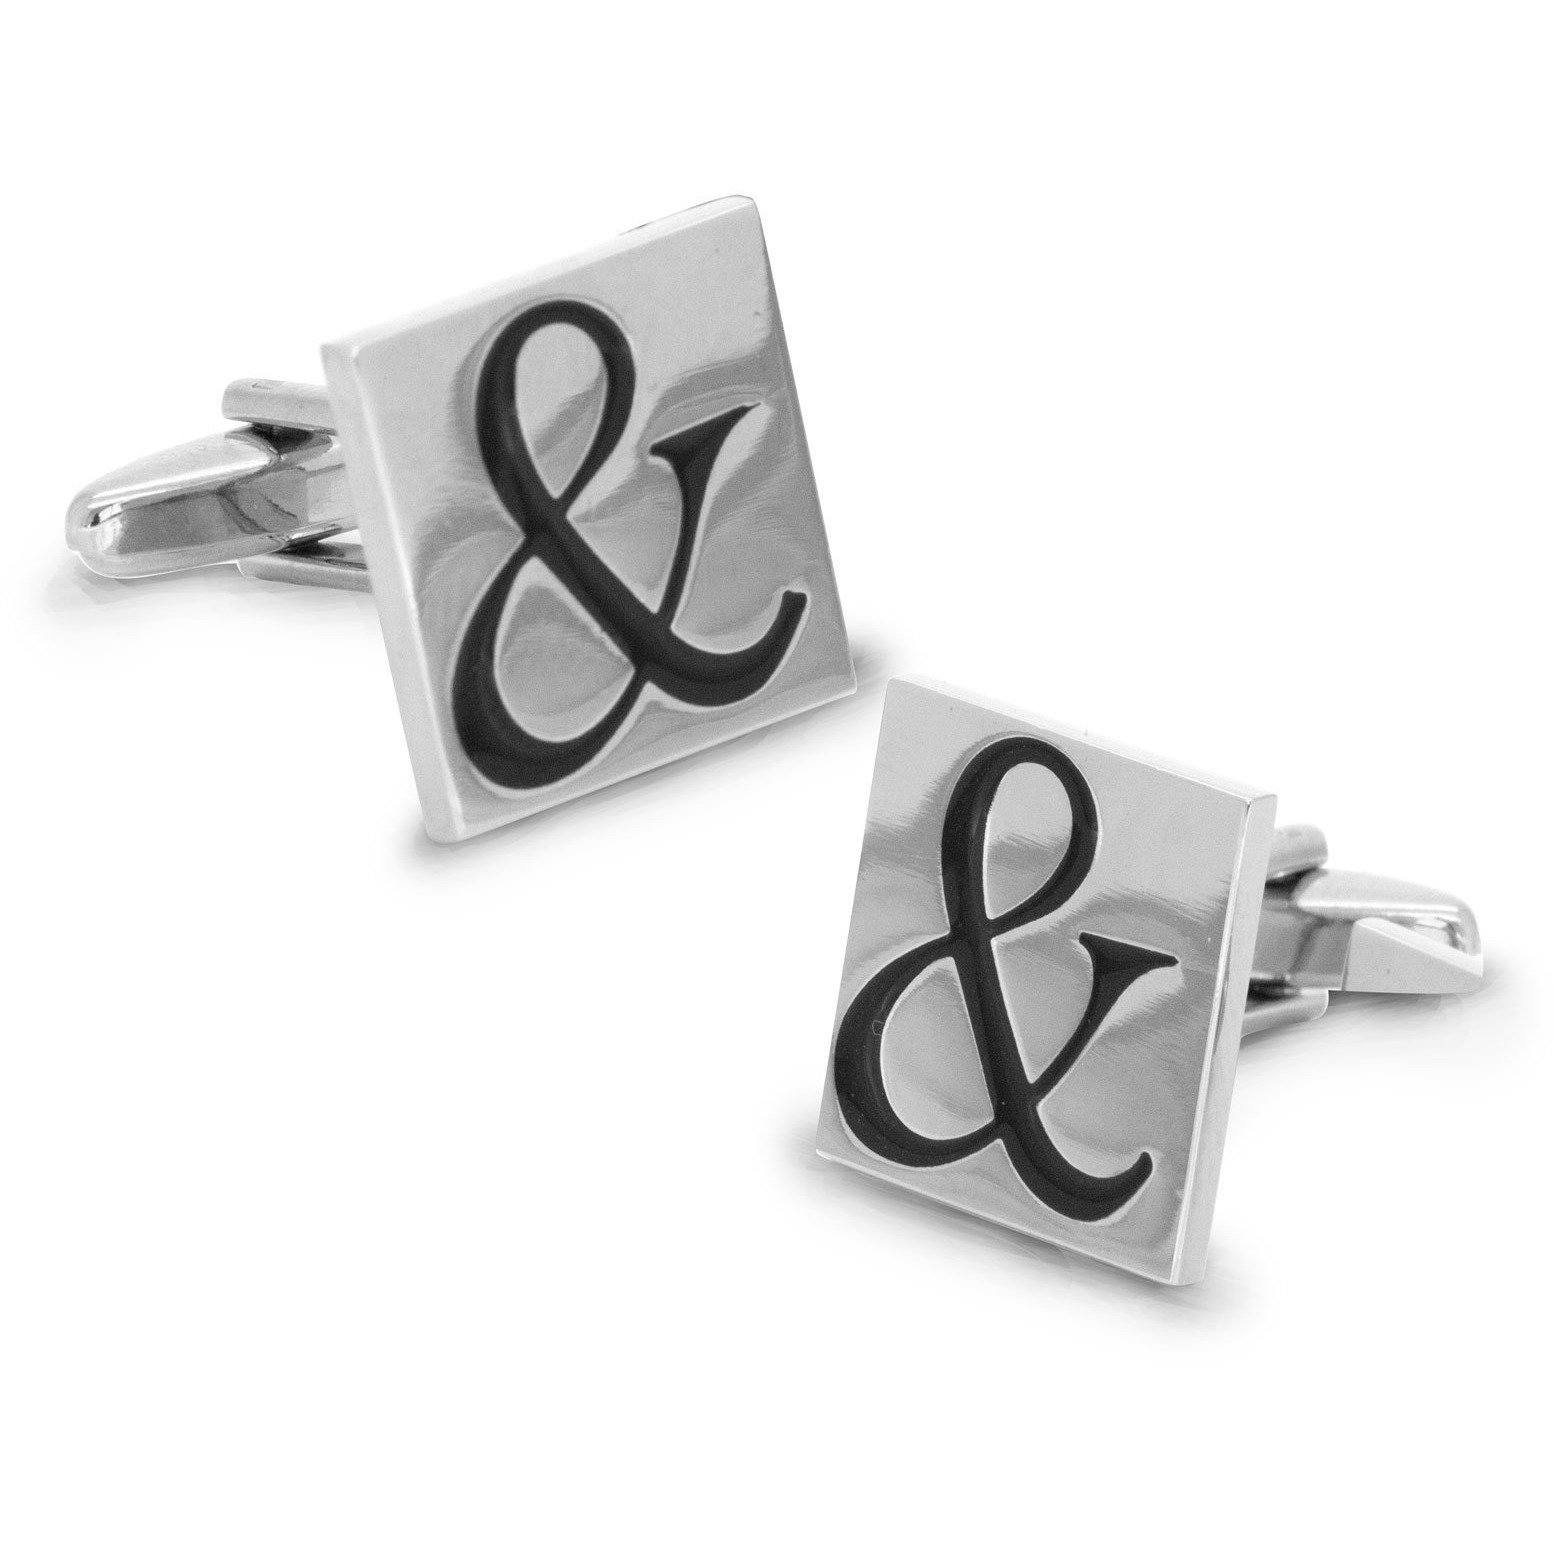 Black Ampersand & Symbol on Silver Square Cufflinks, Novelty Cufflinks, Cuffed.com.au, CL8390, $29.00